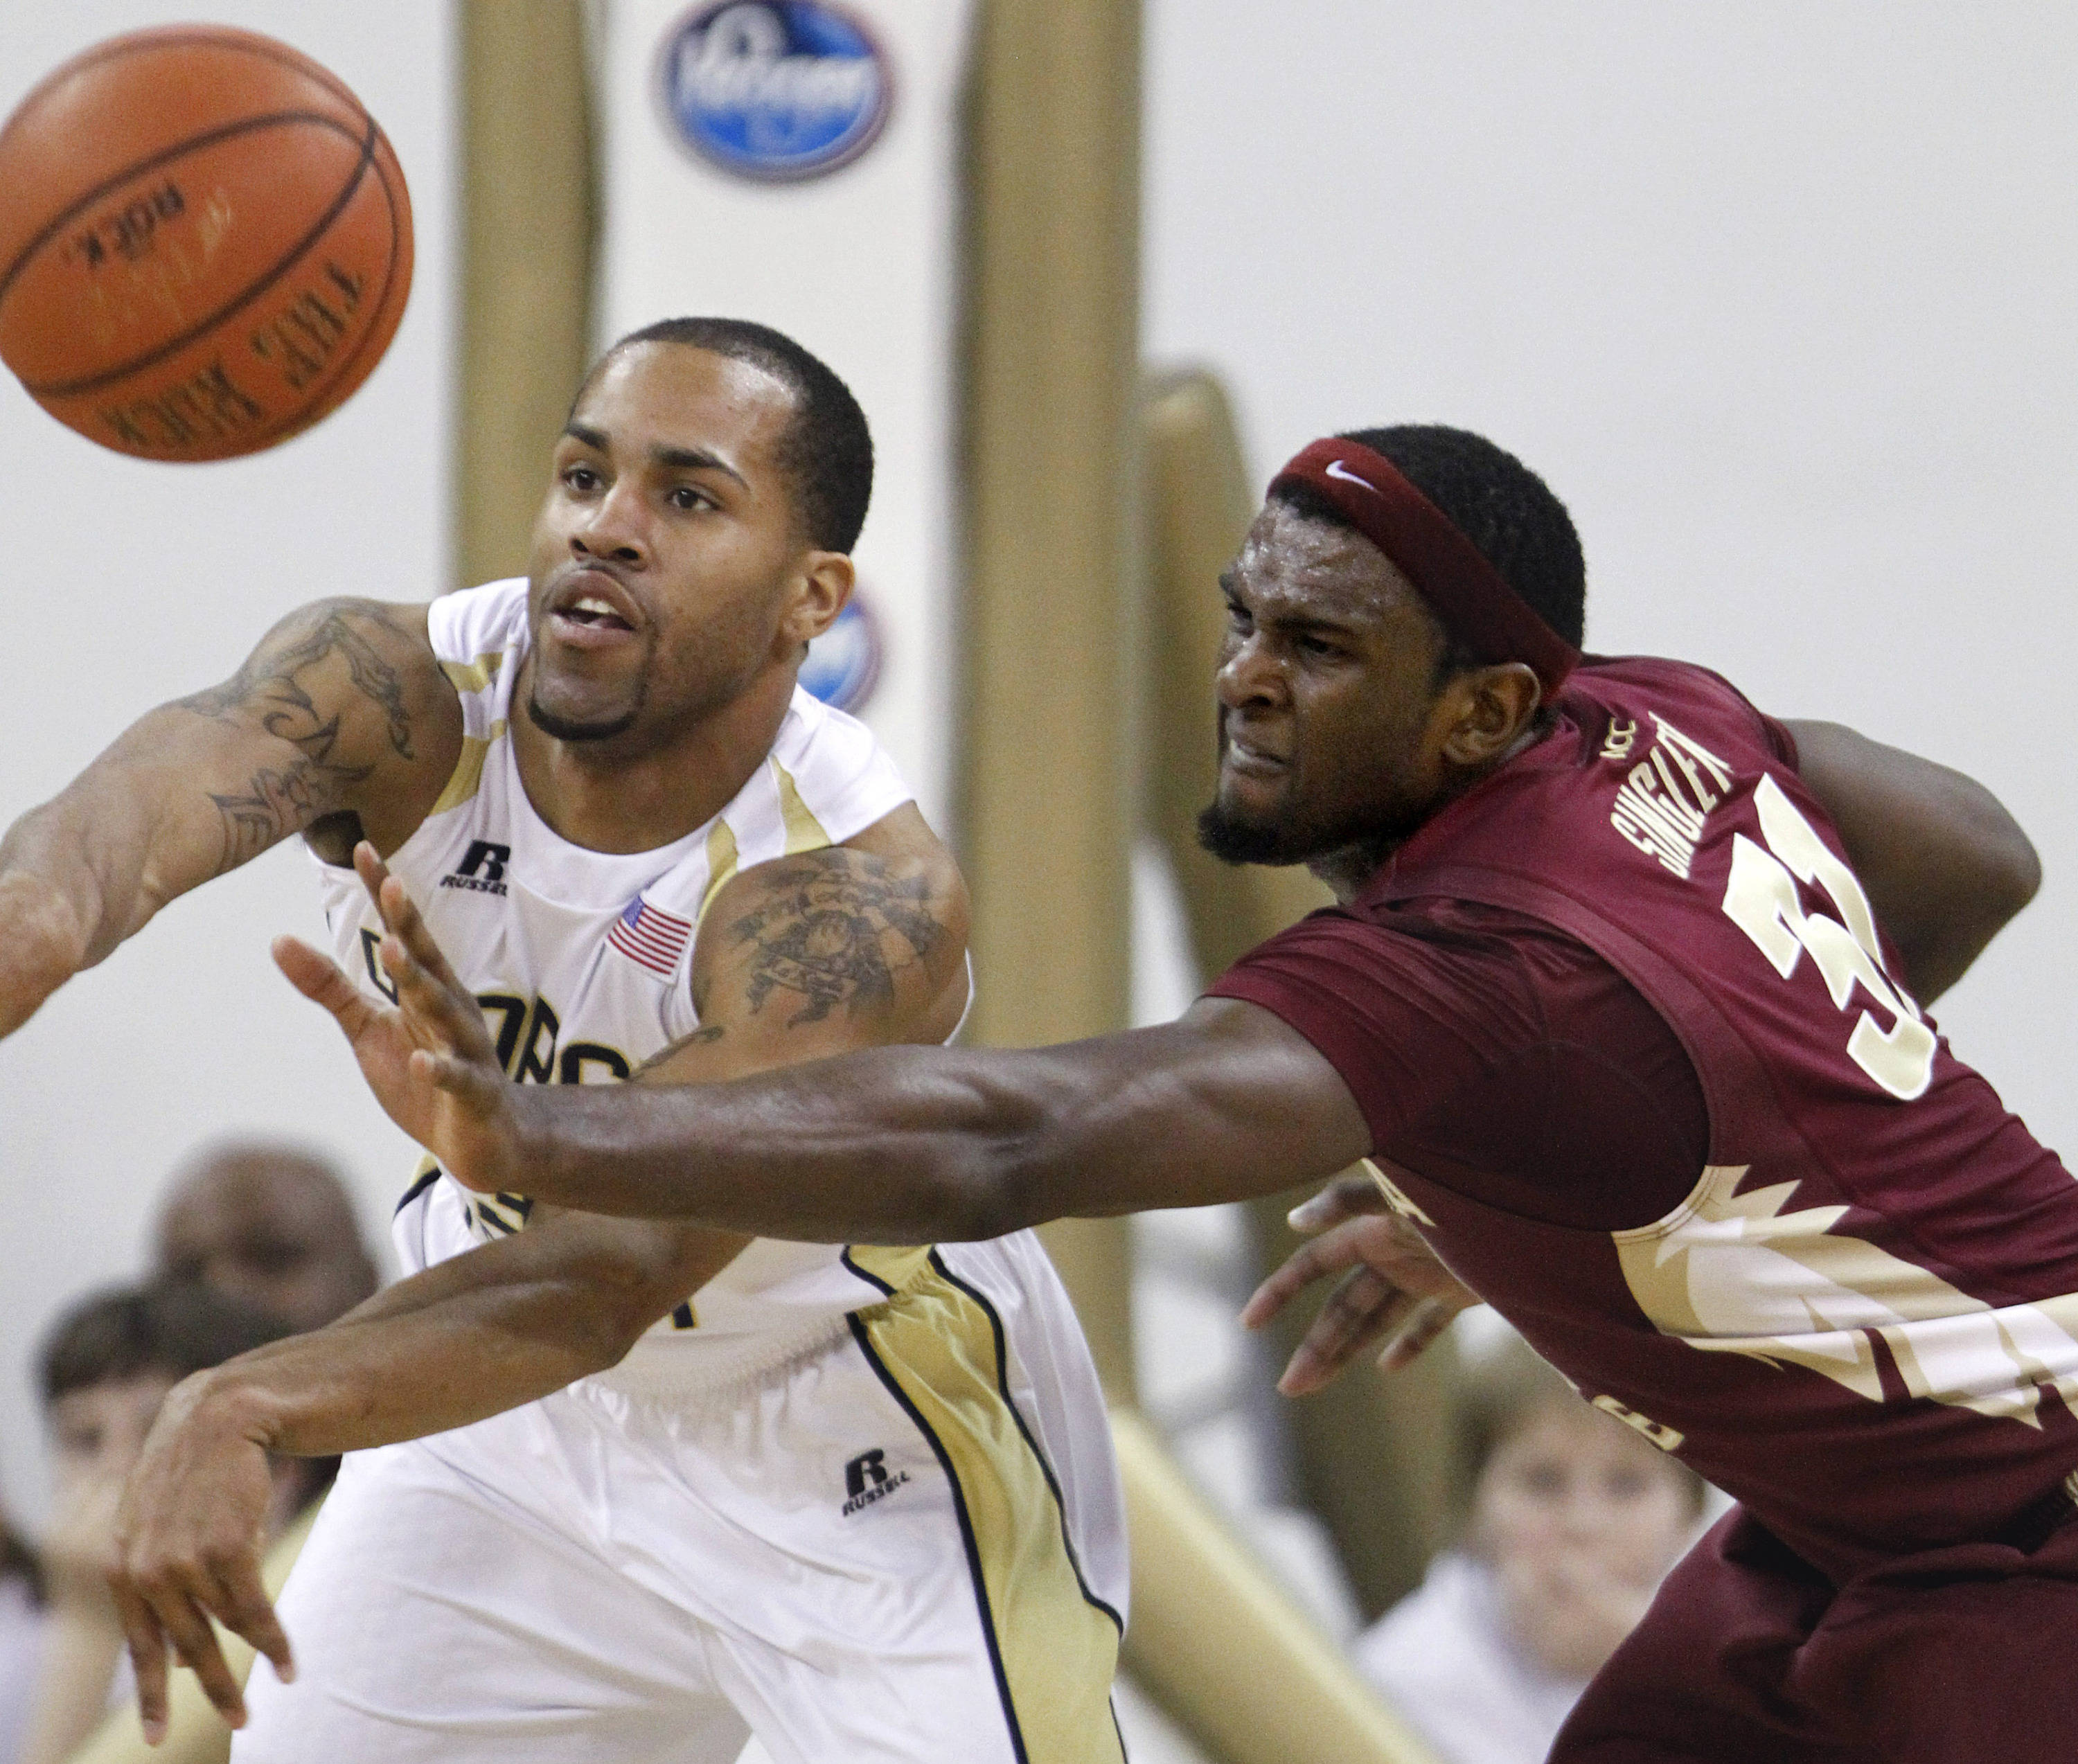 Georgia Tech's Maurice Miller, left, passes the ball away from Florida State forward Chris Singleton during the second half. (AP Photo/David Goldman)